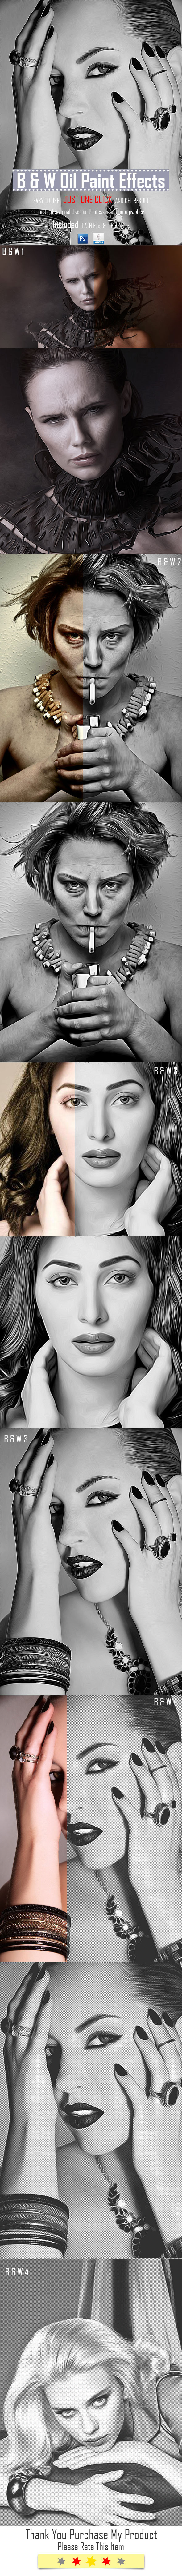 B & W Oil Paint Effects - Photo Effects Actions